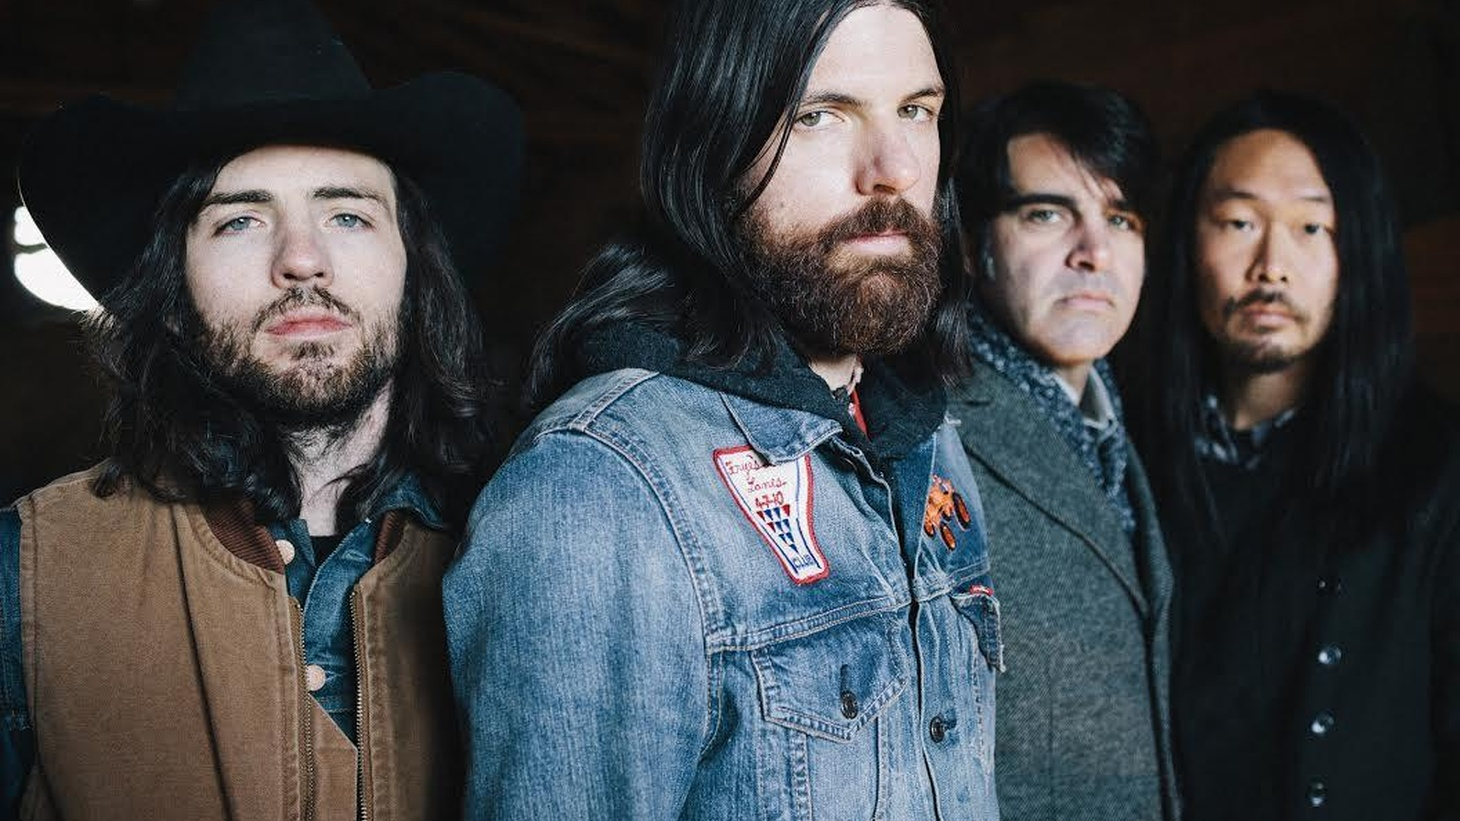 Grammy nominees The Avett Brothers have a firm grasp on the Americana scene and their most recent album was produced by none other than Rick Rubin.